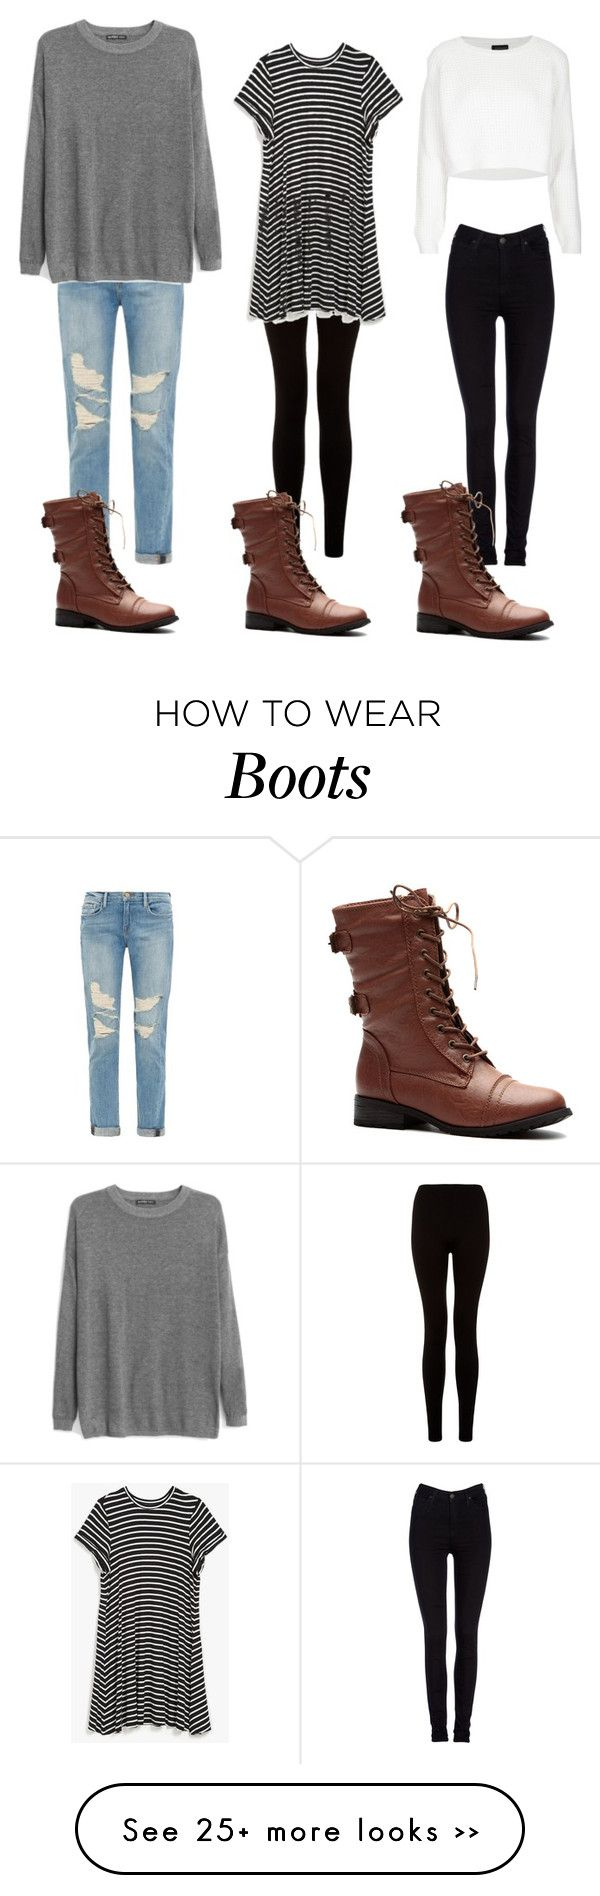 """How to Style: Brown Combat Boots"" by rileyadewitt on Polyvore"